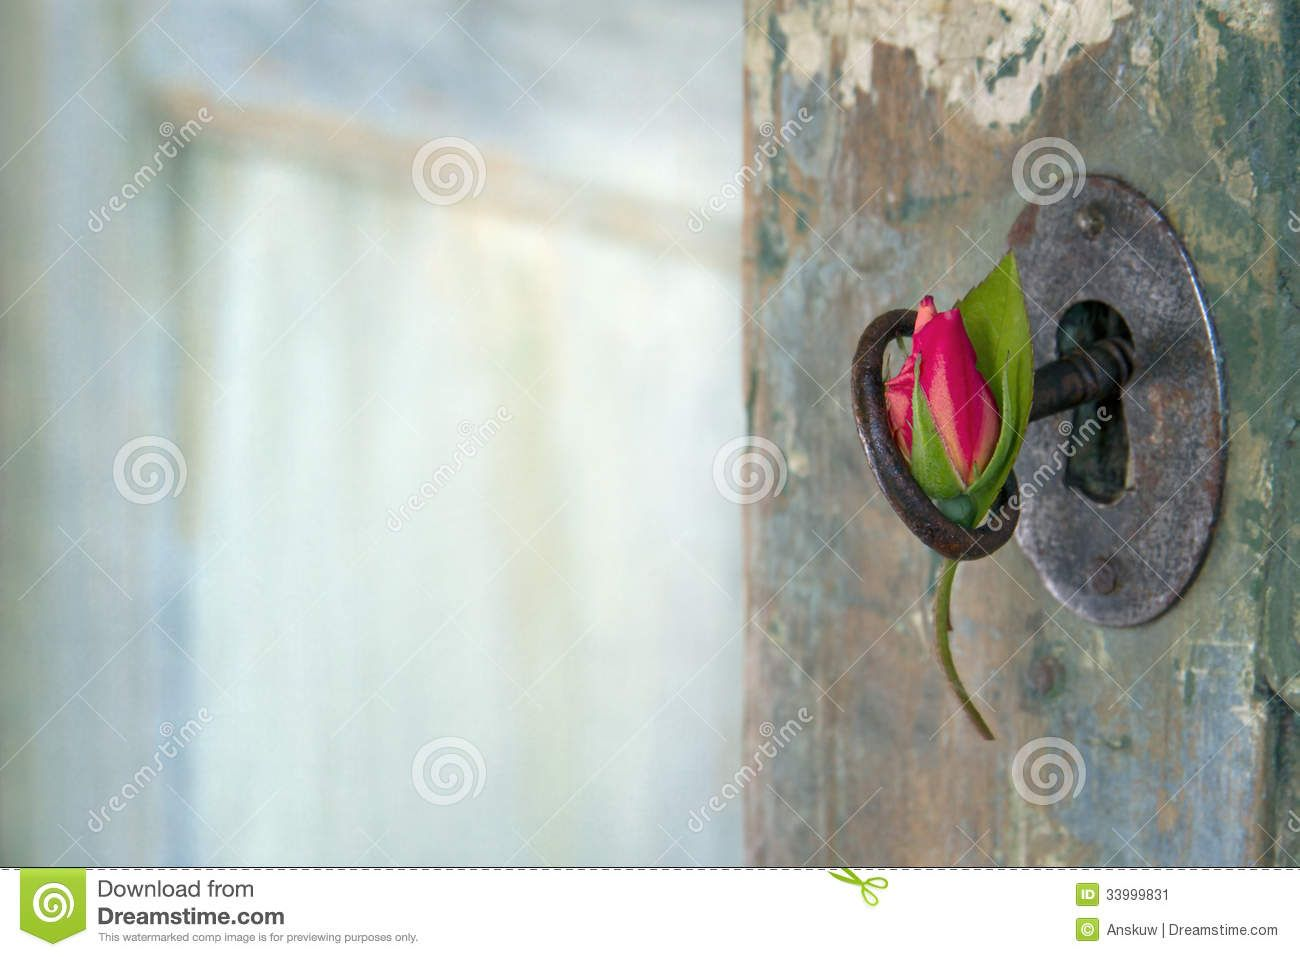 old door opening to flowers | Green old wooden door opening with light shining through and red rose ...